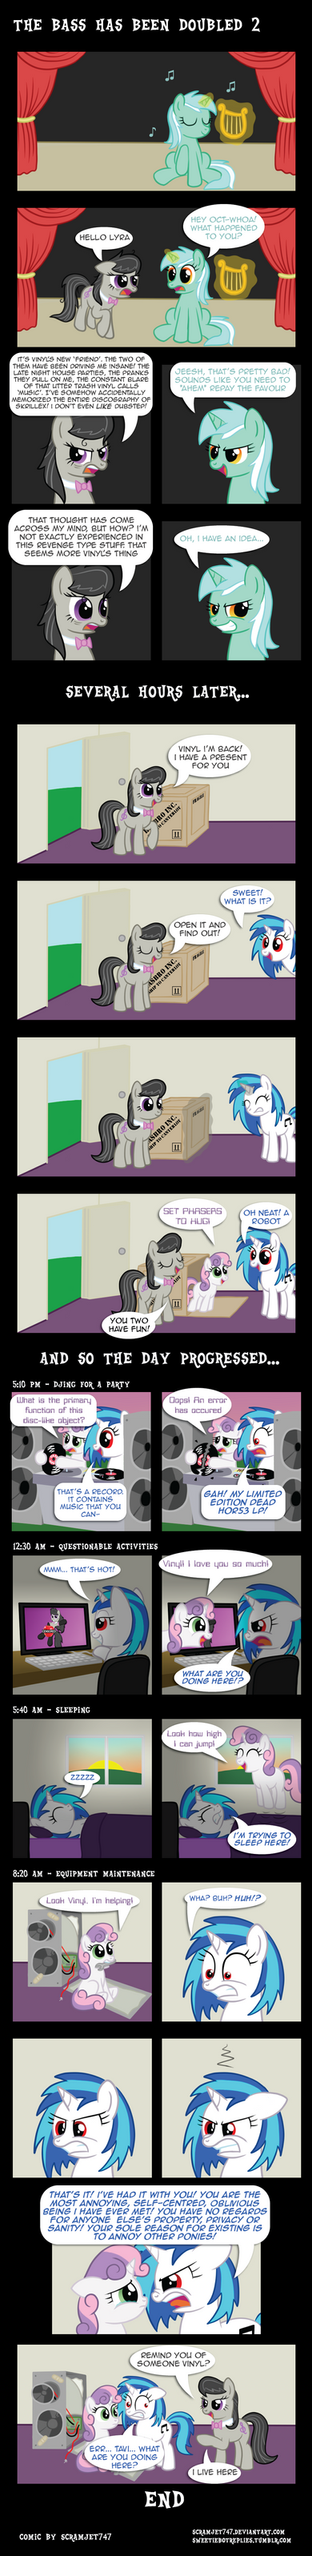 The Bass Has Been Doubled 2: Sweet(ie) Revenge by Scramjet747